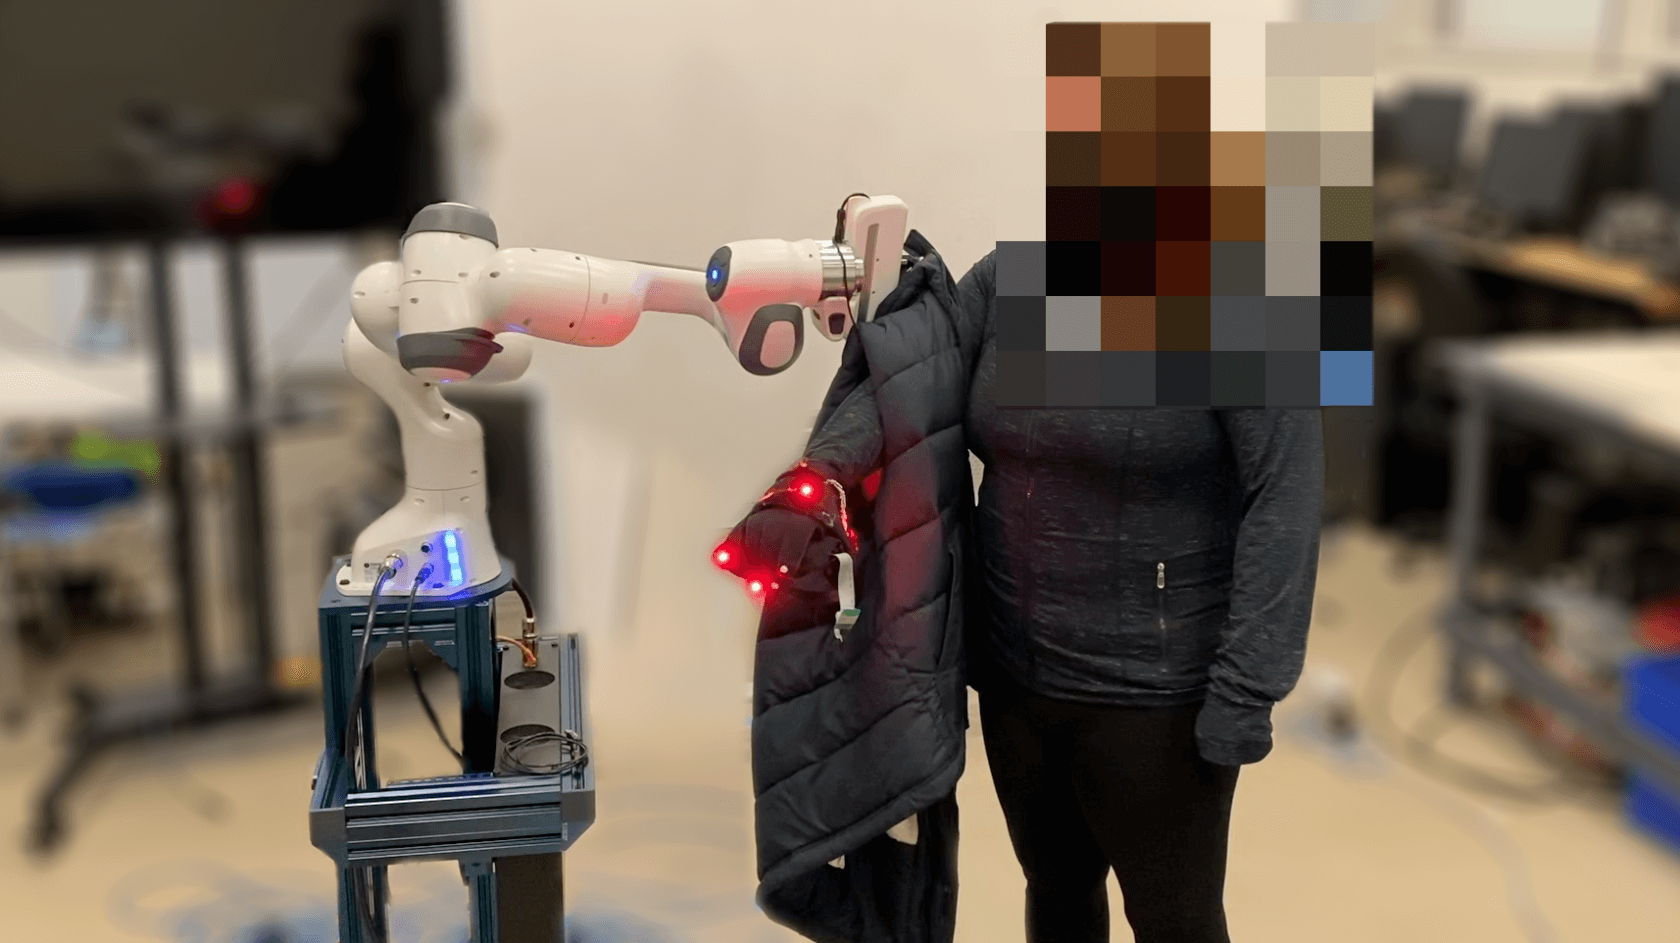 MIT's latest robot can help those with limited mobility get dressed